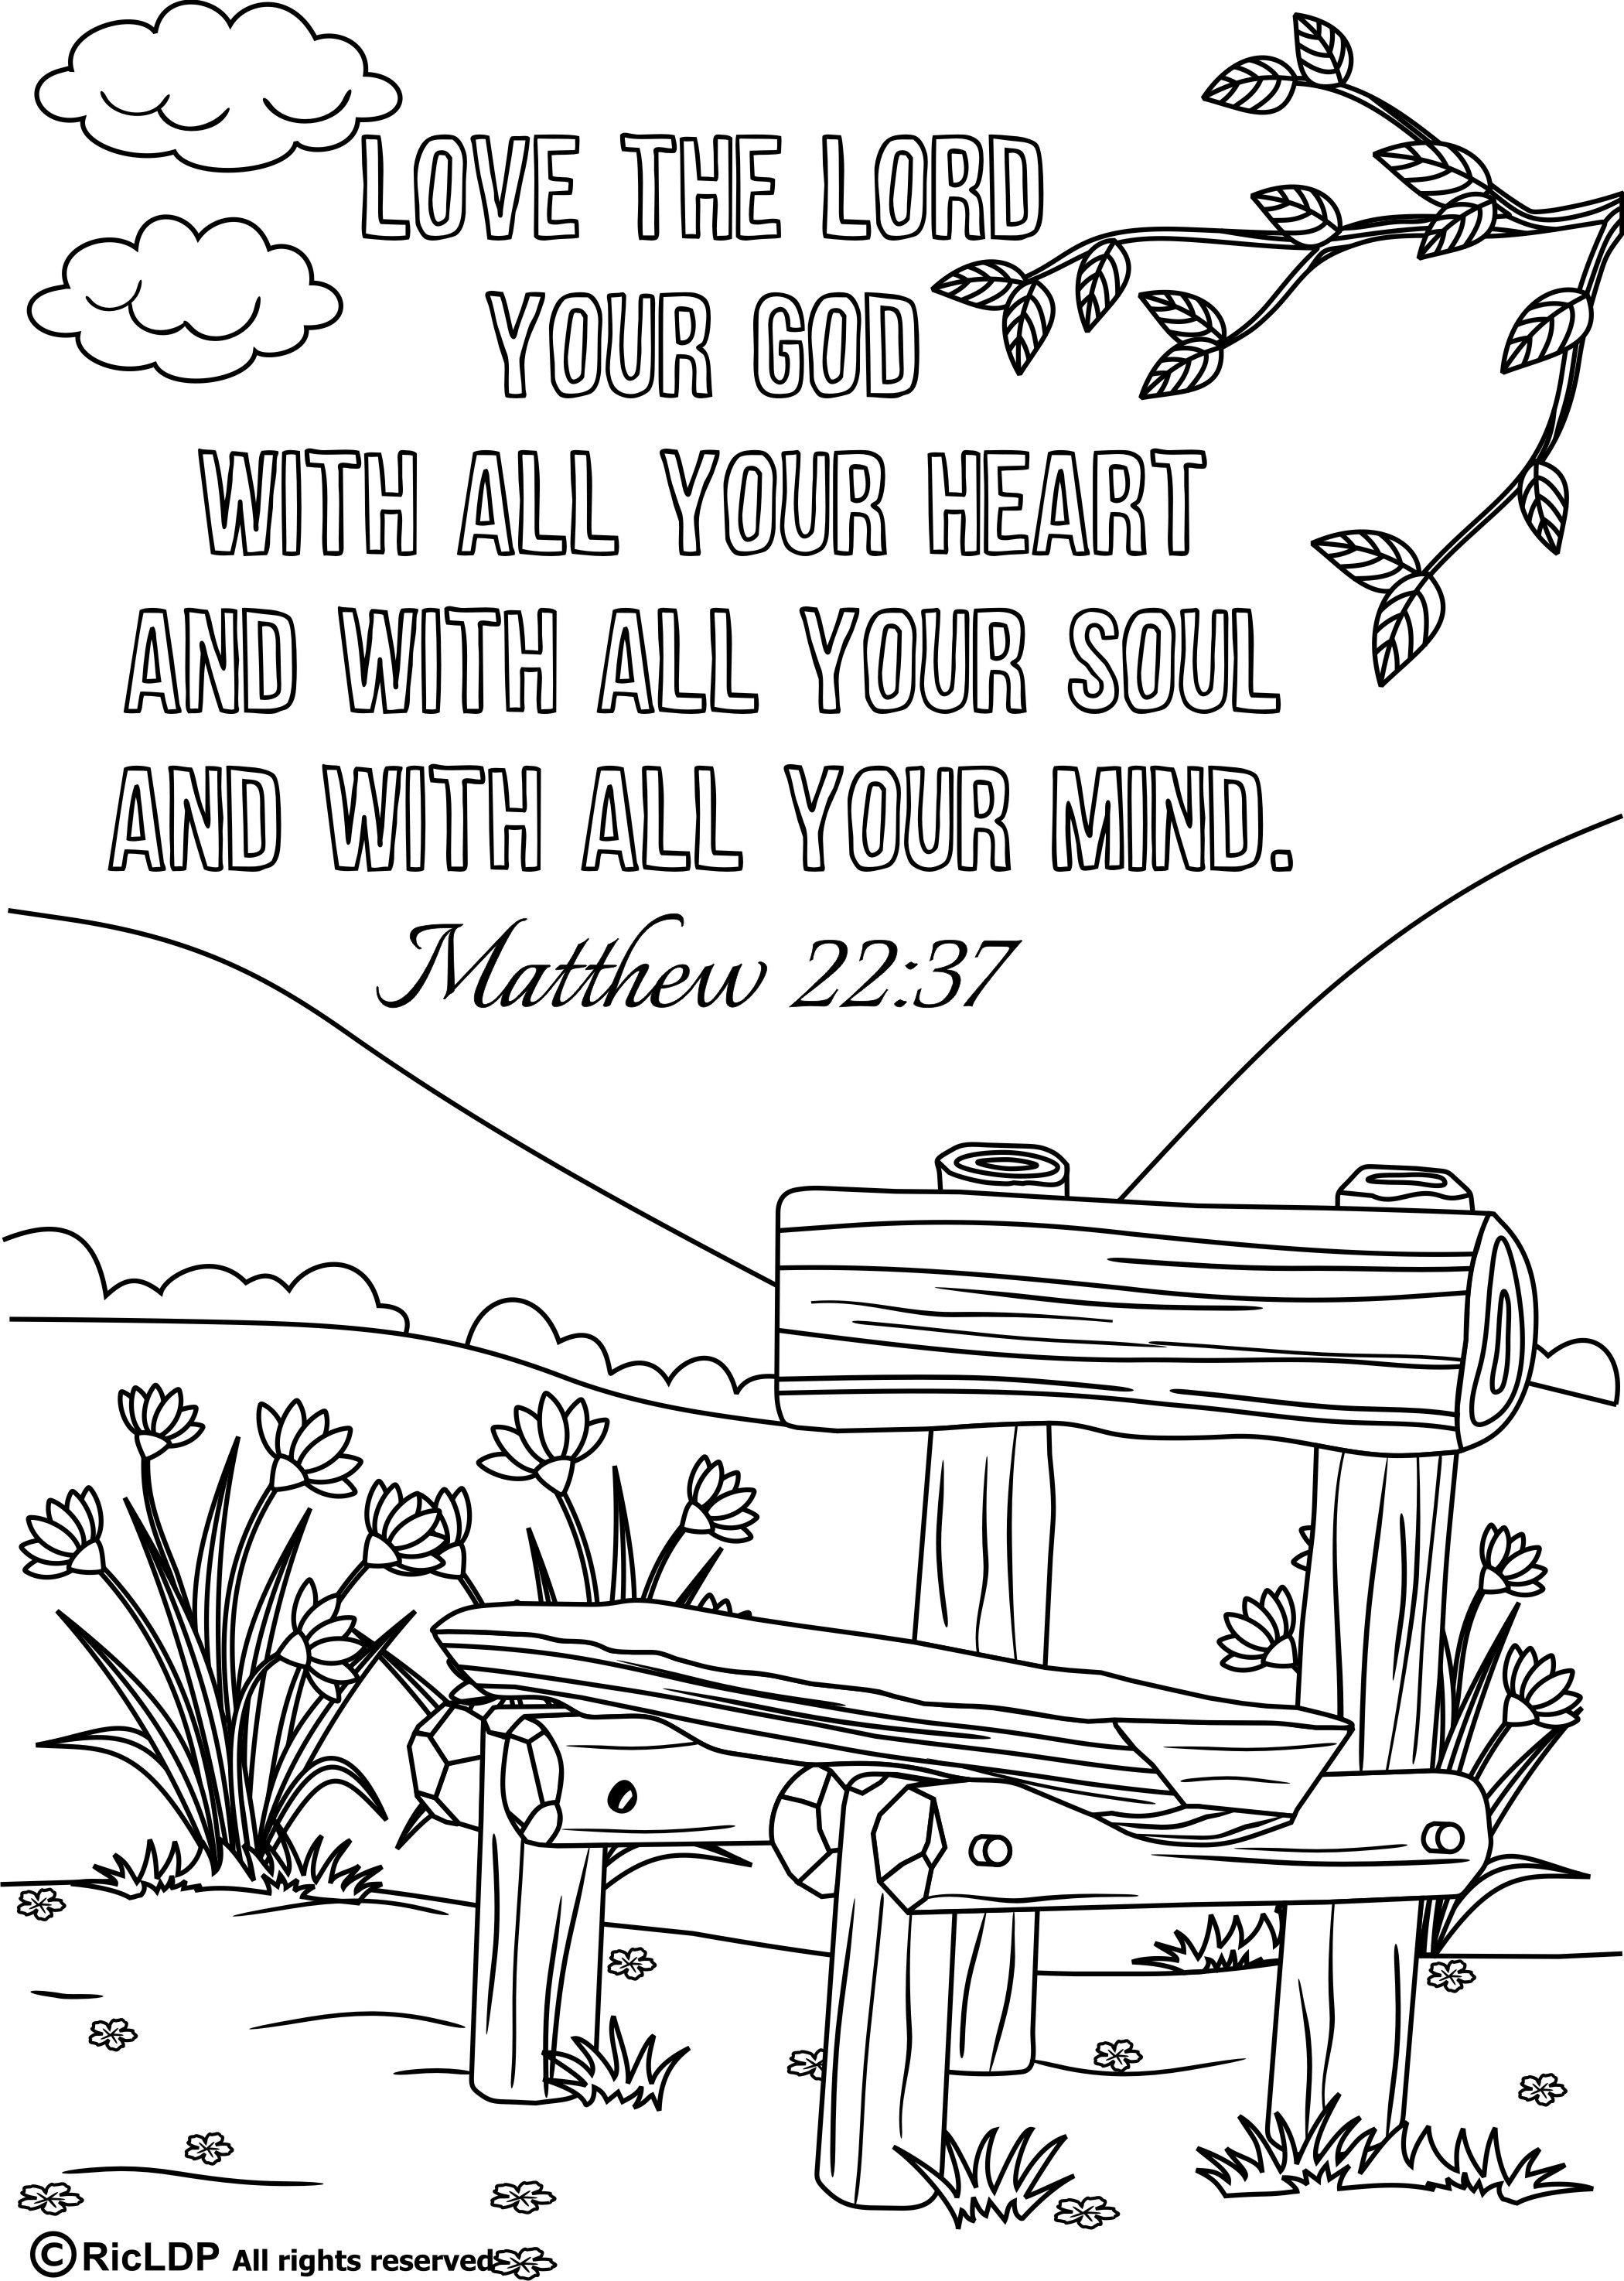 Christian Halloween Coloring Pages Best Of Pdf File Coloring Pages Inspirational 15 Bible Ver In 2020 Bible Verse Coloring Jesus Coloring Pages Printable Coloring Book